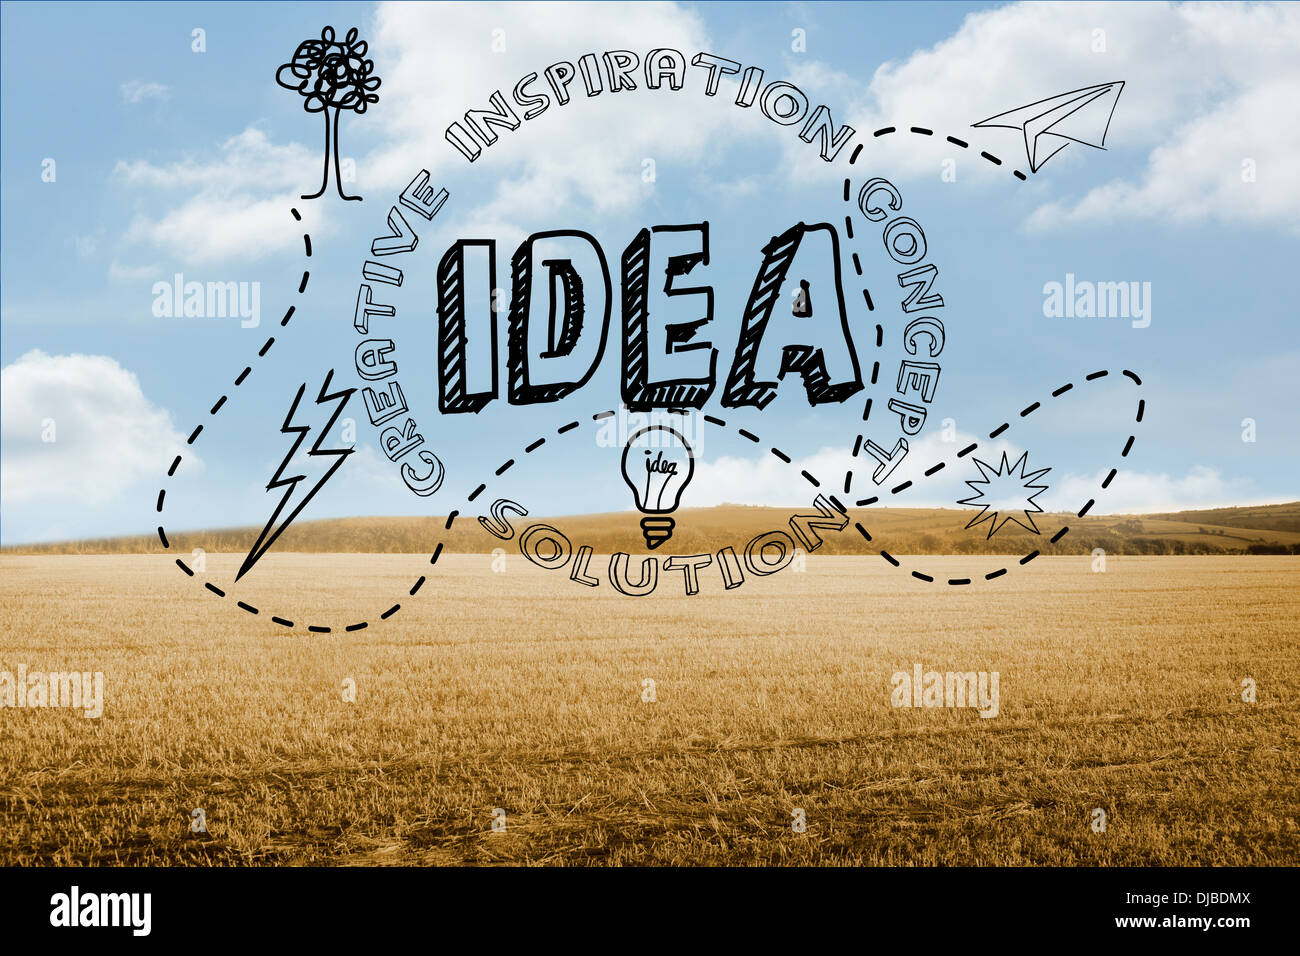 Idea graphic on countryside - Stock Image